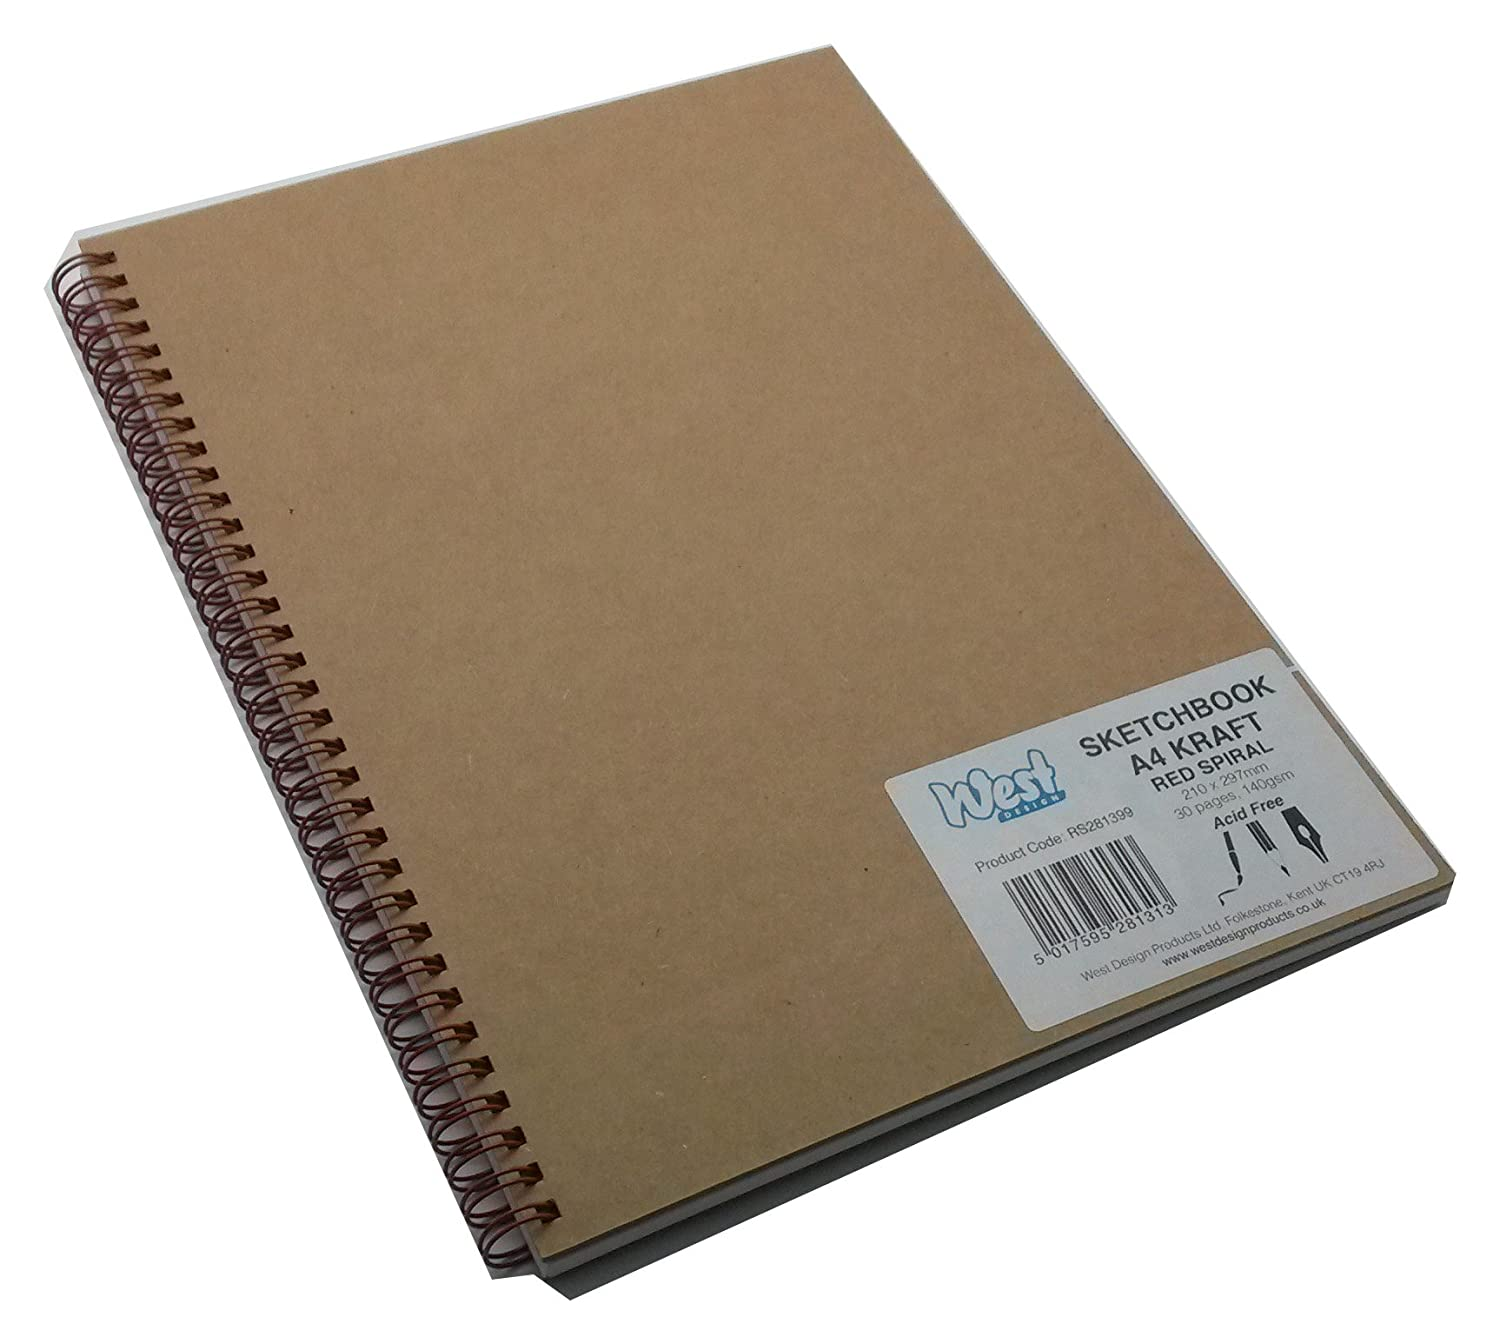 13 Colours 140 gsm paper 40 pages West Design A4 Artist/'s Drawing Sketchbook